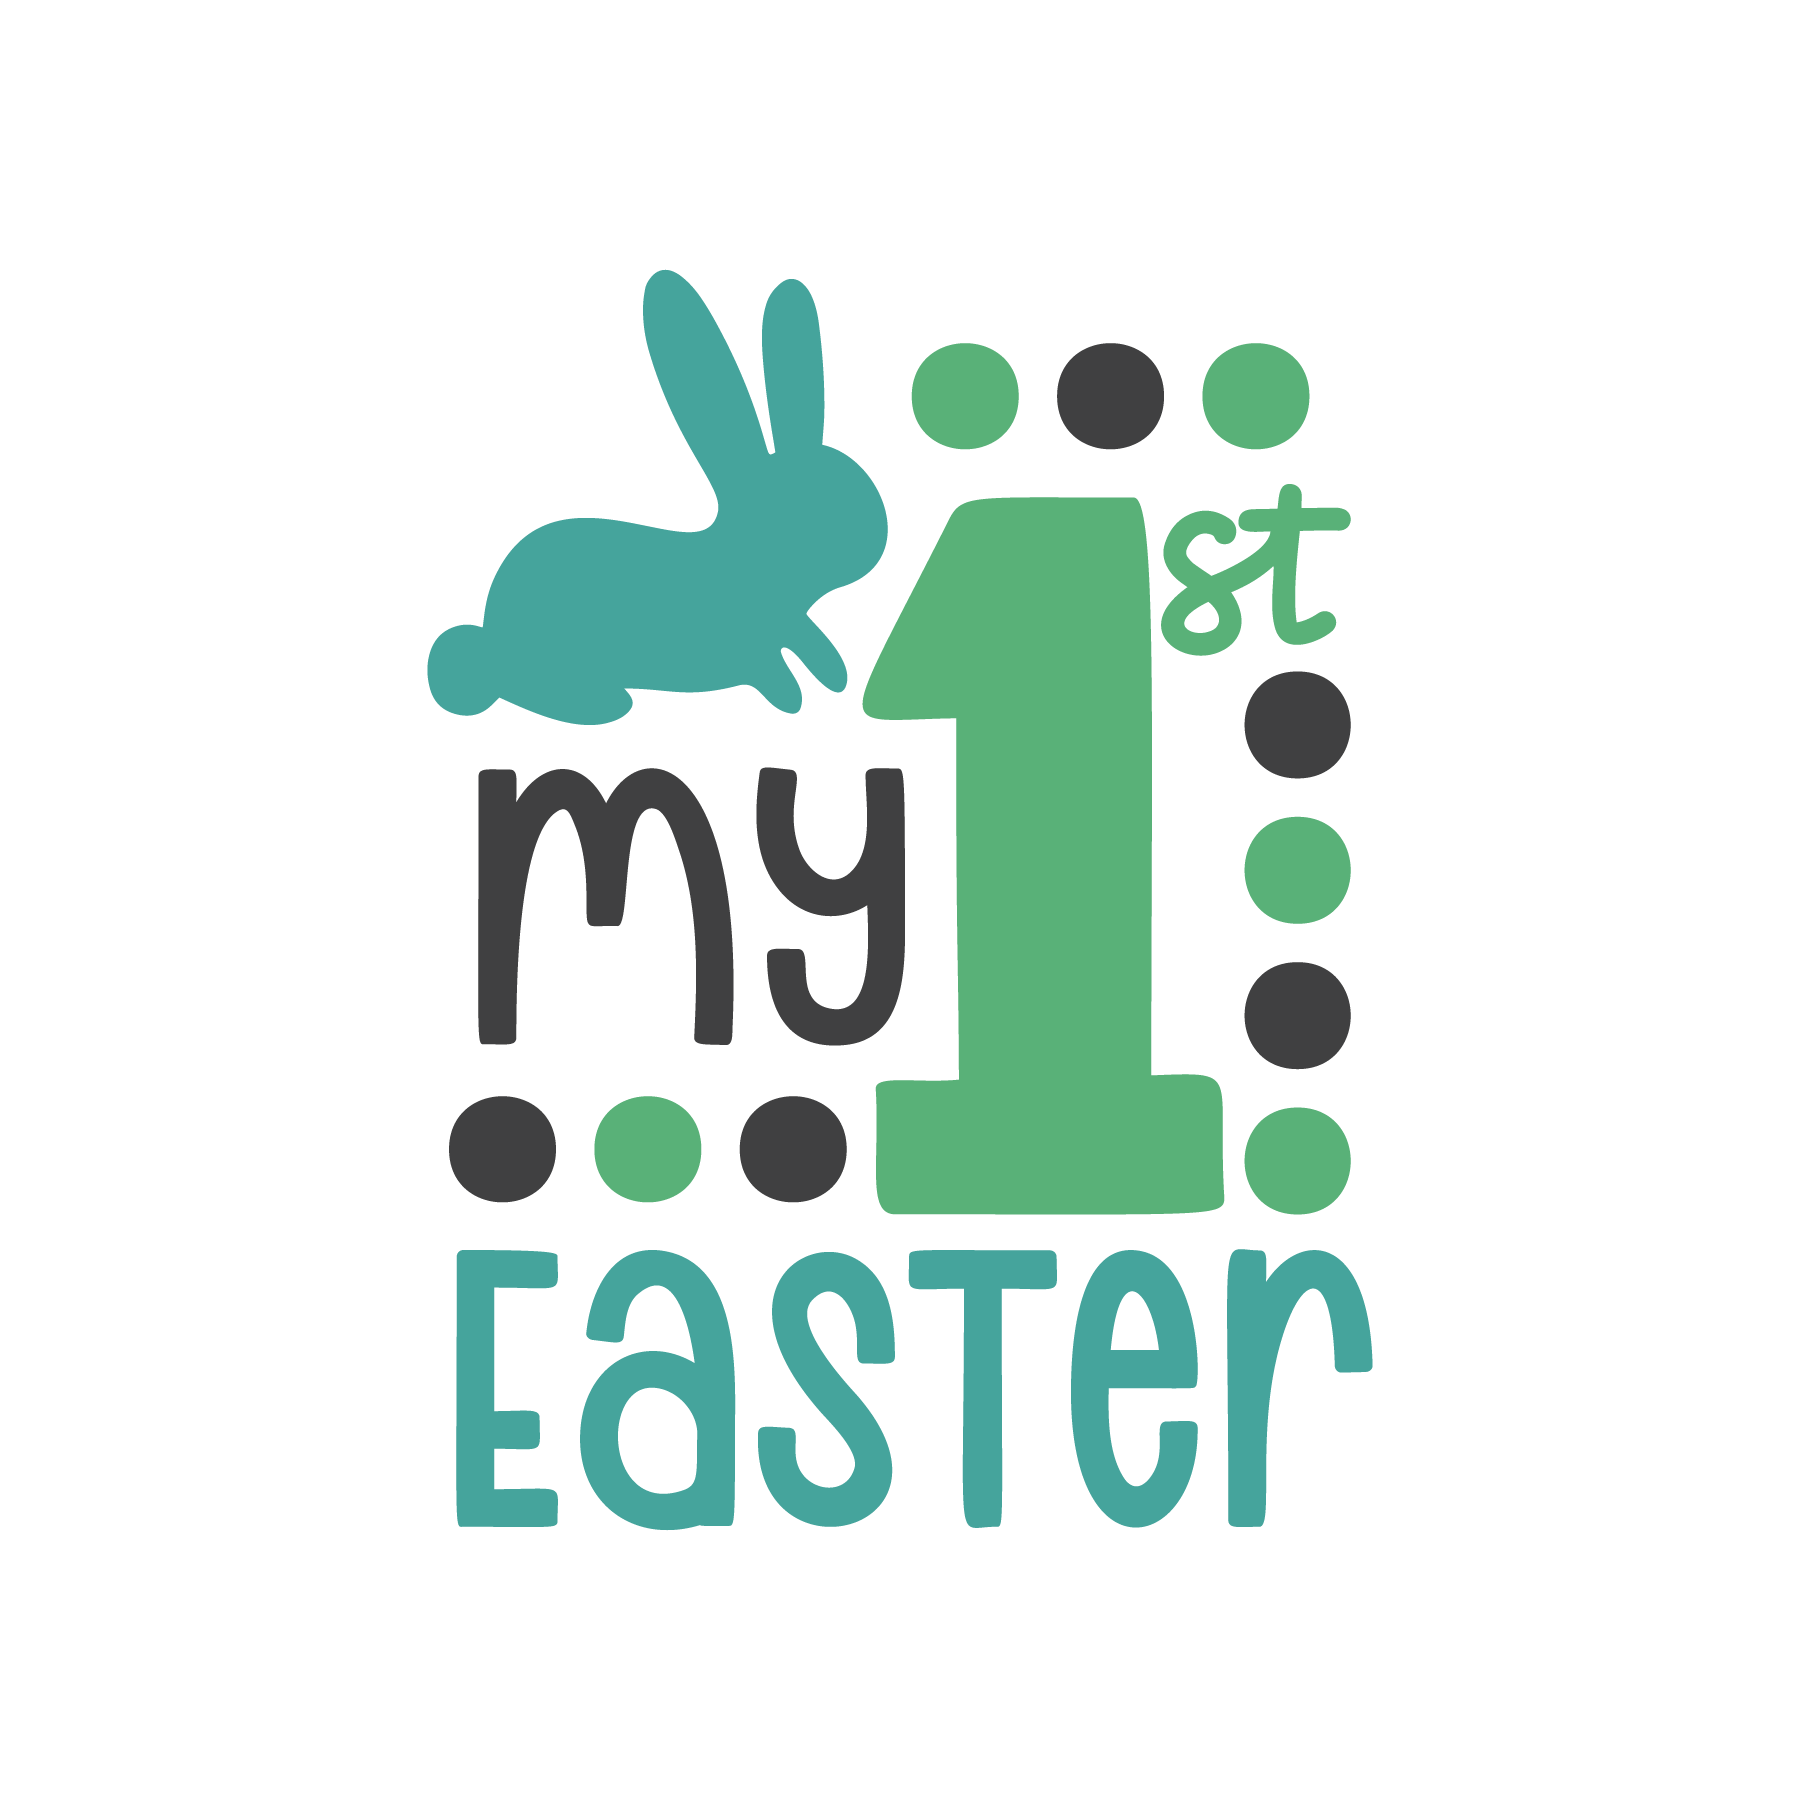 Download Pin by Diy, Craftingand More.. on Svg free | Cricut easter ...